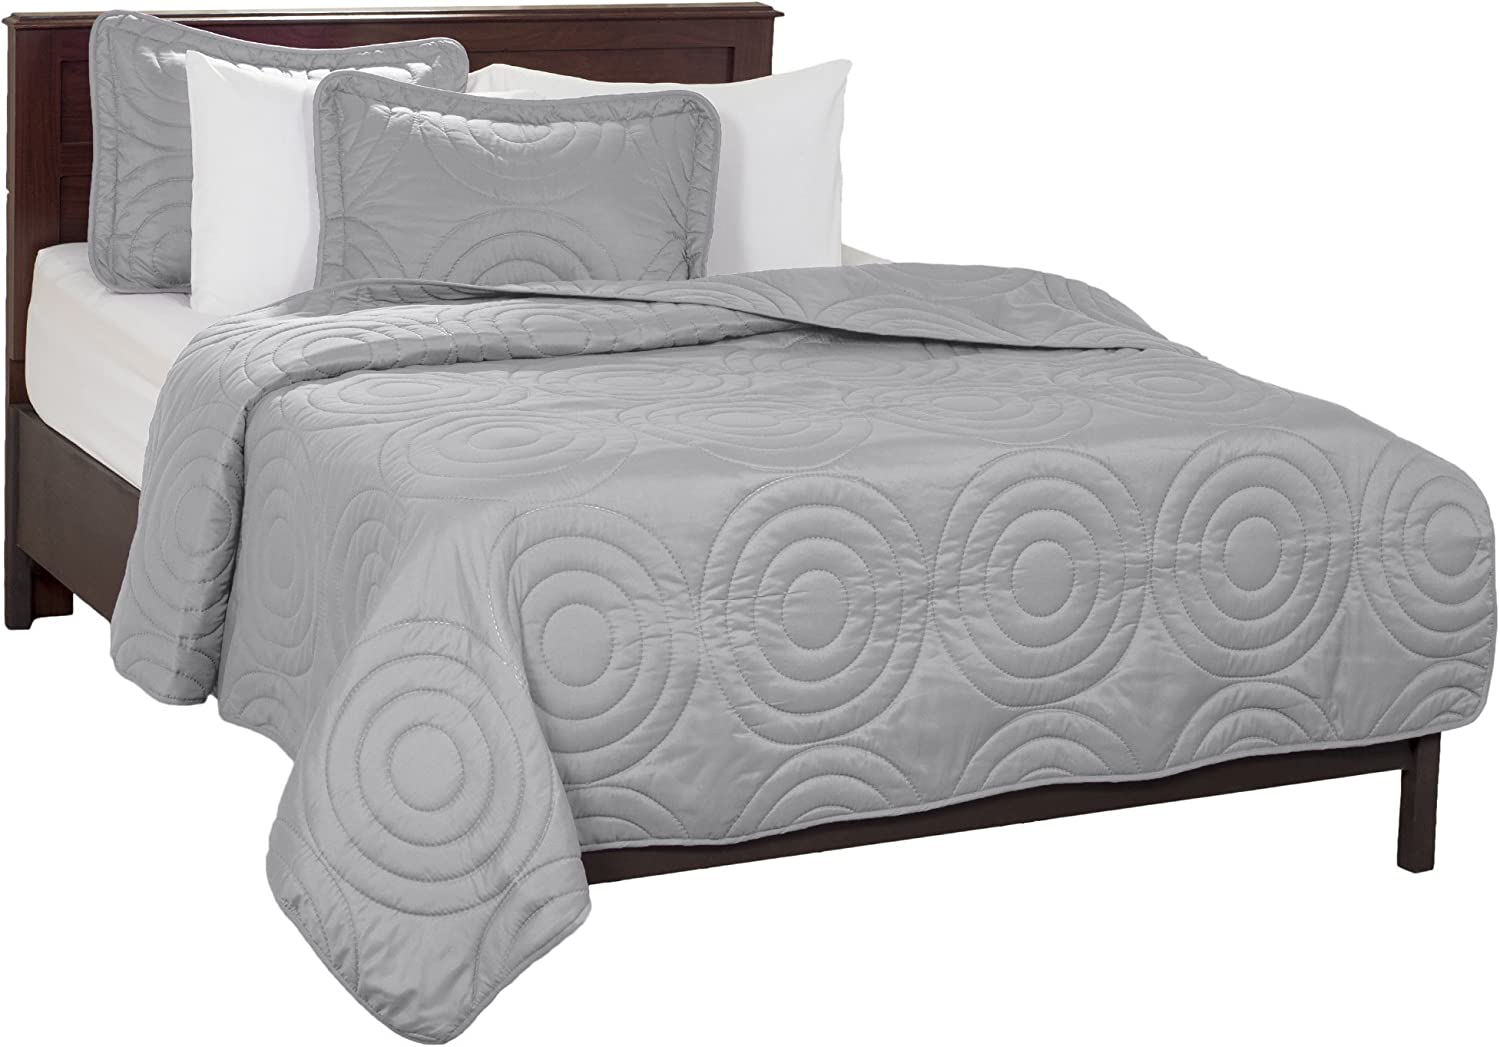 Lavish Home Solid Embossed 3 Piece Quilt Set - King - Silver